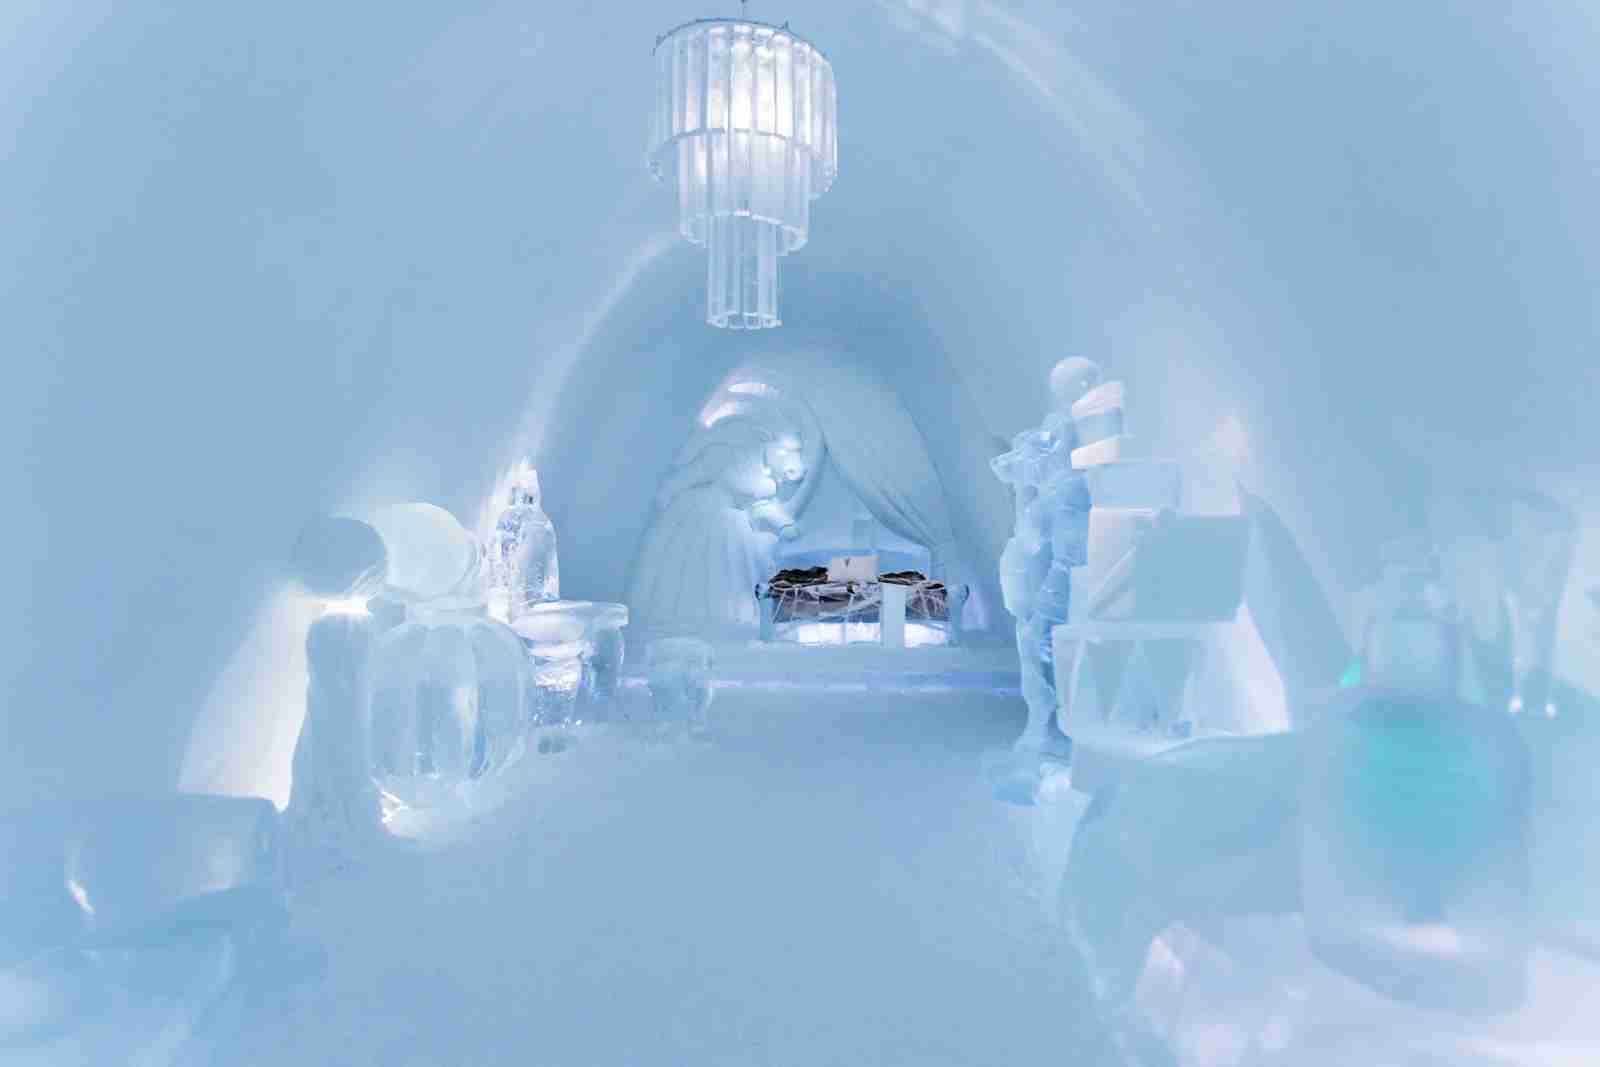 (Photo courtesy of ICEHOTEL/Luxury Suite design byTjåsa Gusfors, Ulrika Tallving)